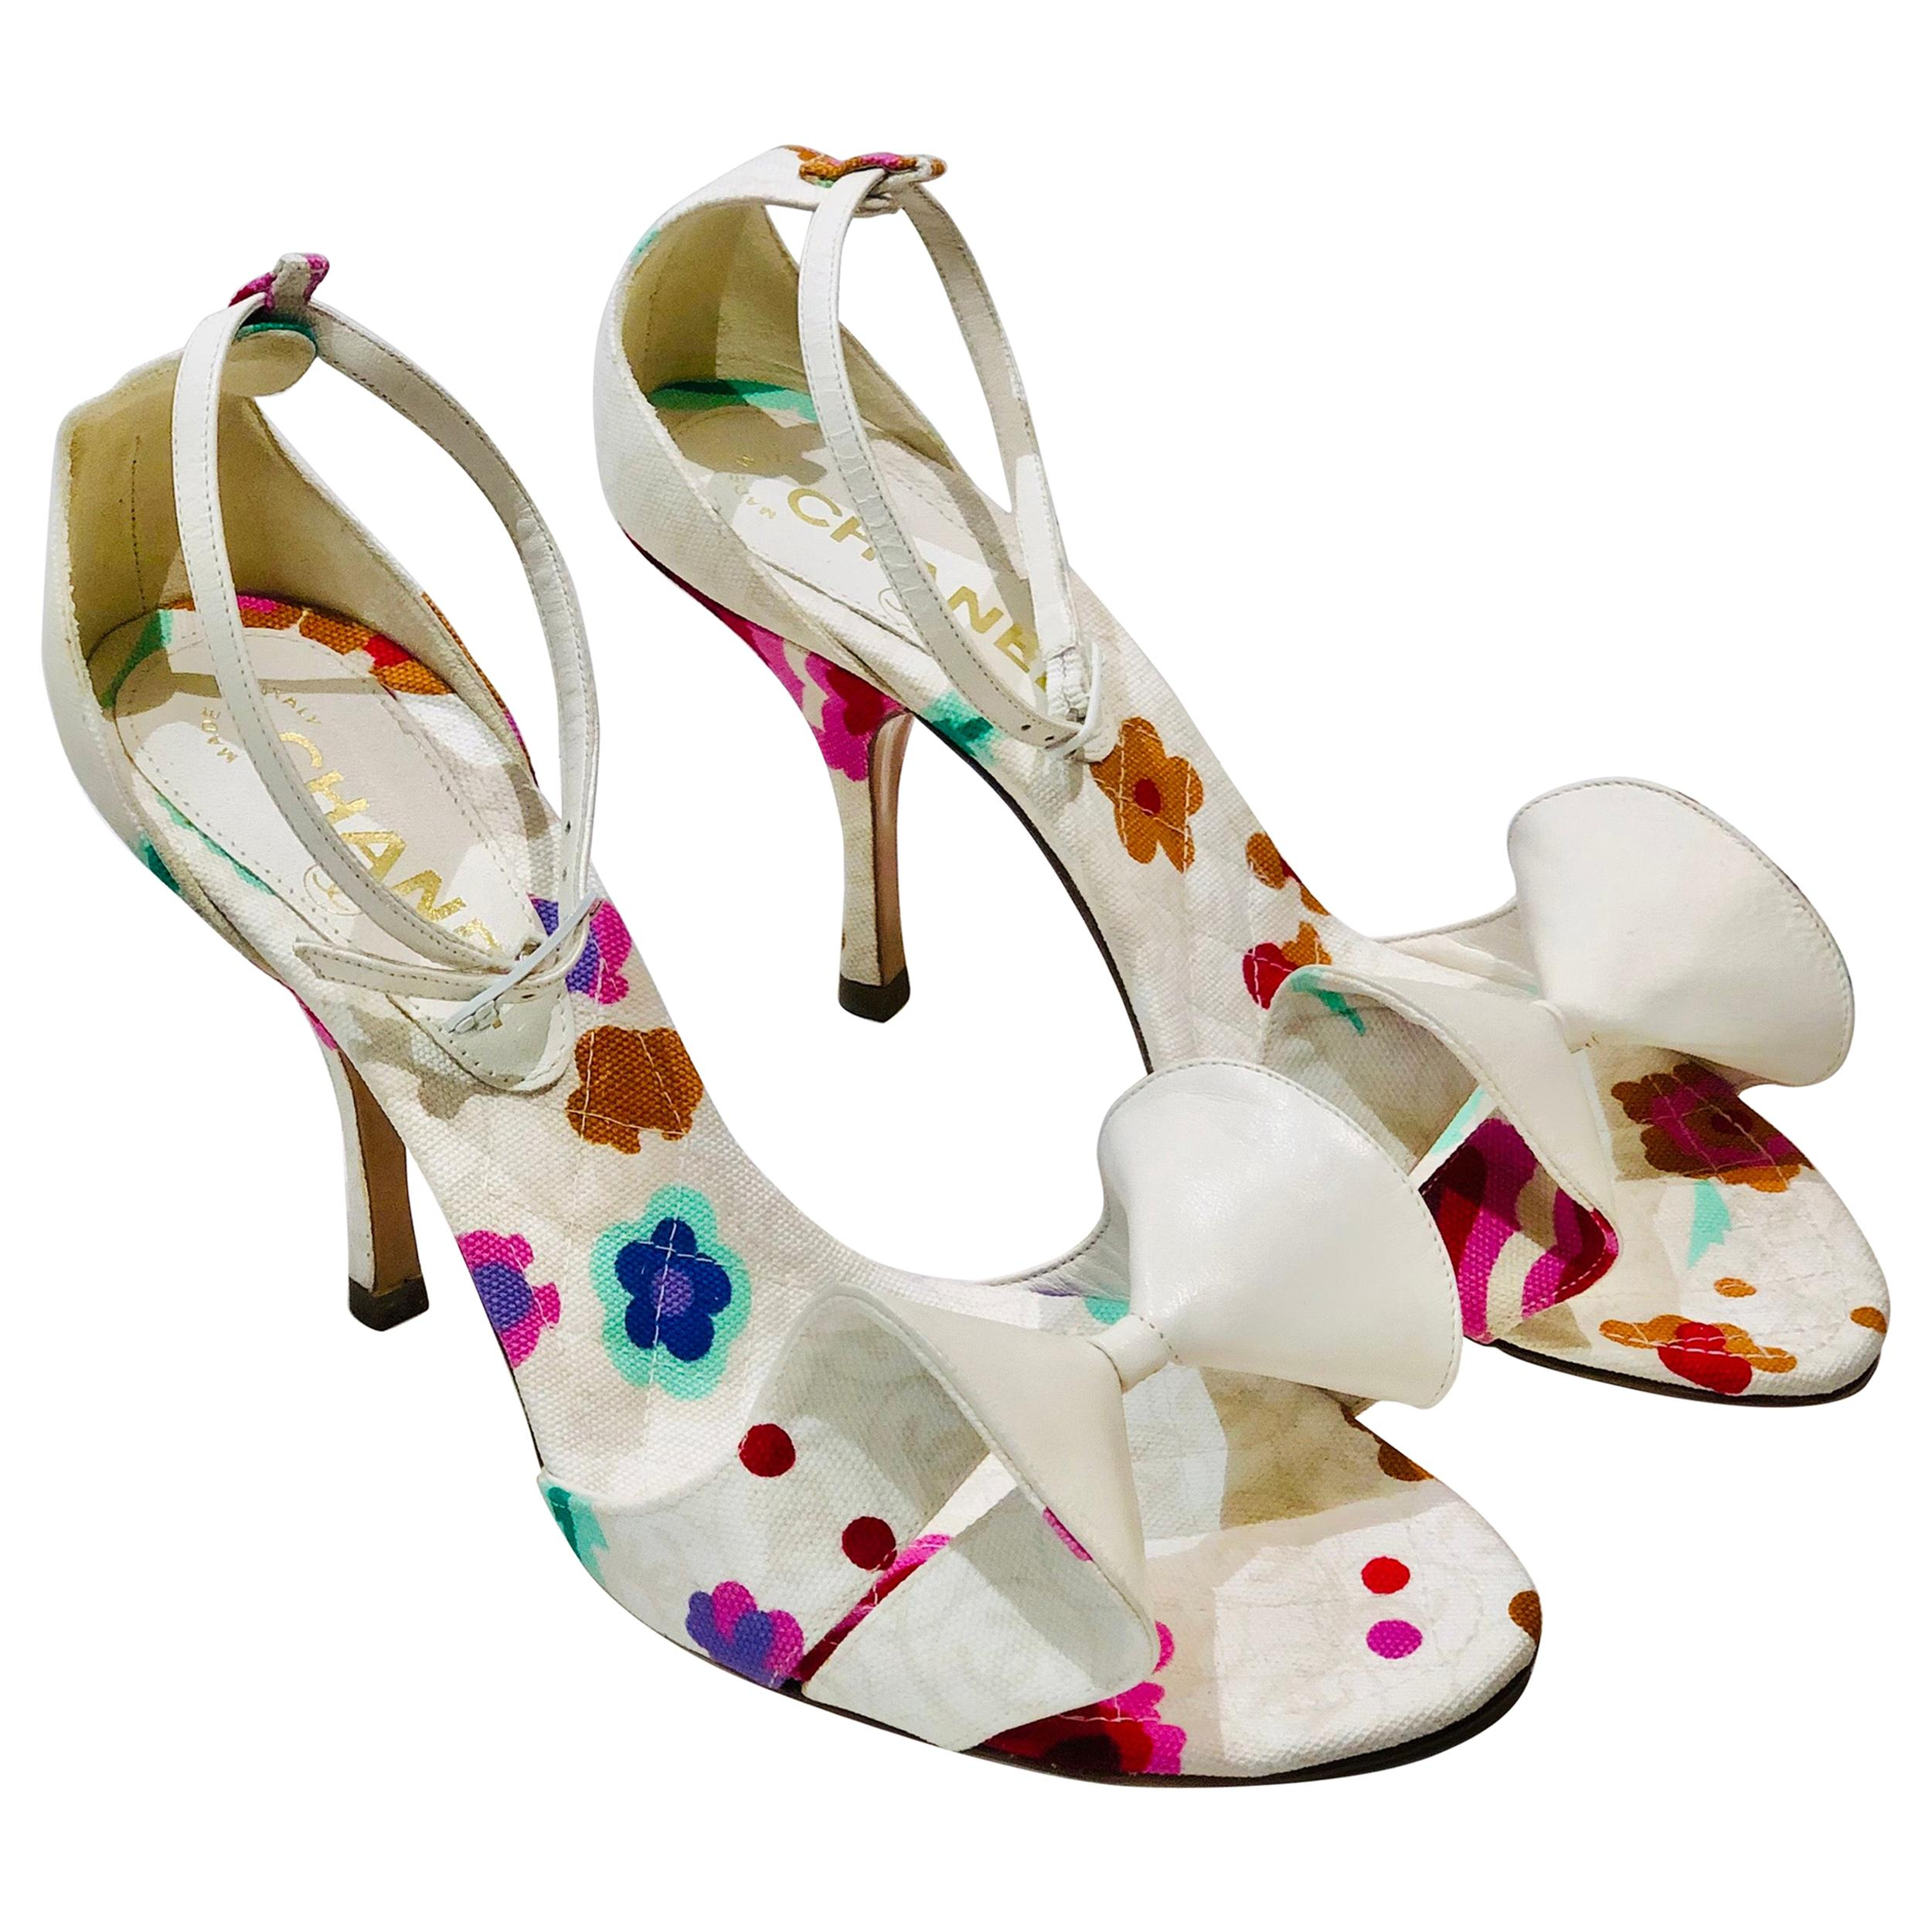 Chanel White Canvas Leather Bows Floral Print Strap Sandals In Heels